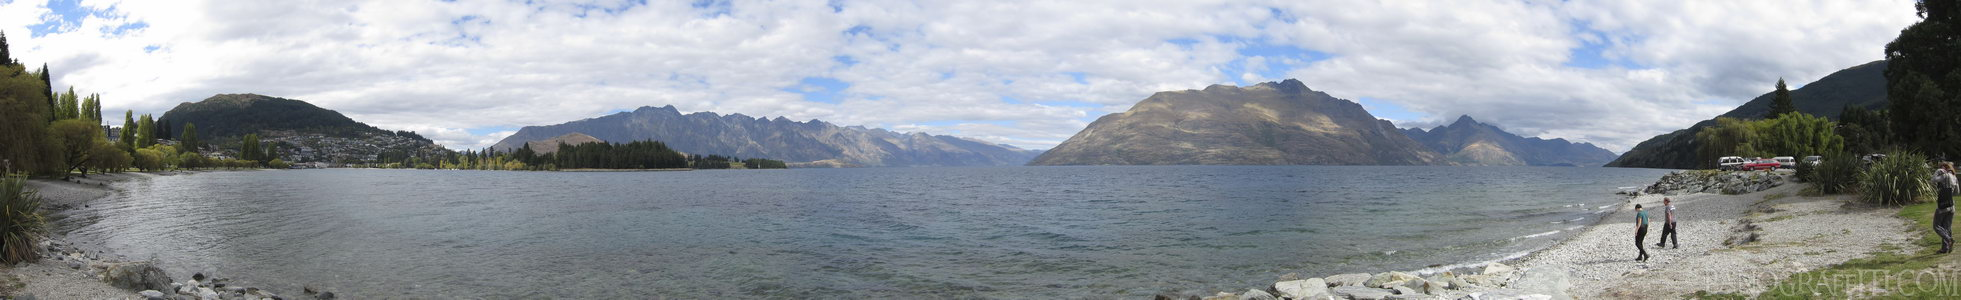 Queenstown and Lake Wakatipu Near Sunshine Bay - Queenstown, Otago, New Zealand